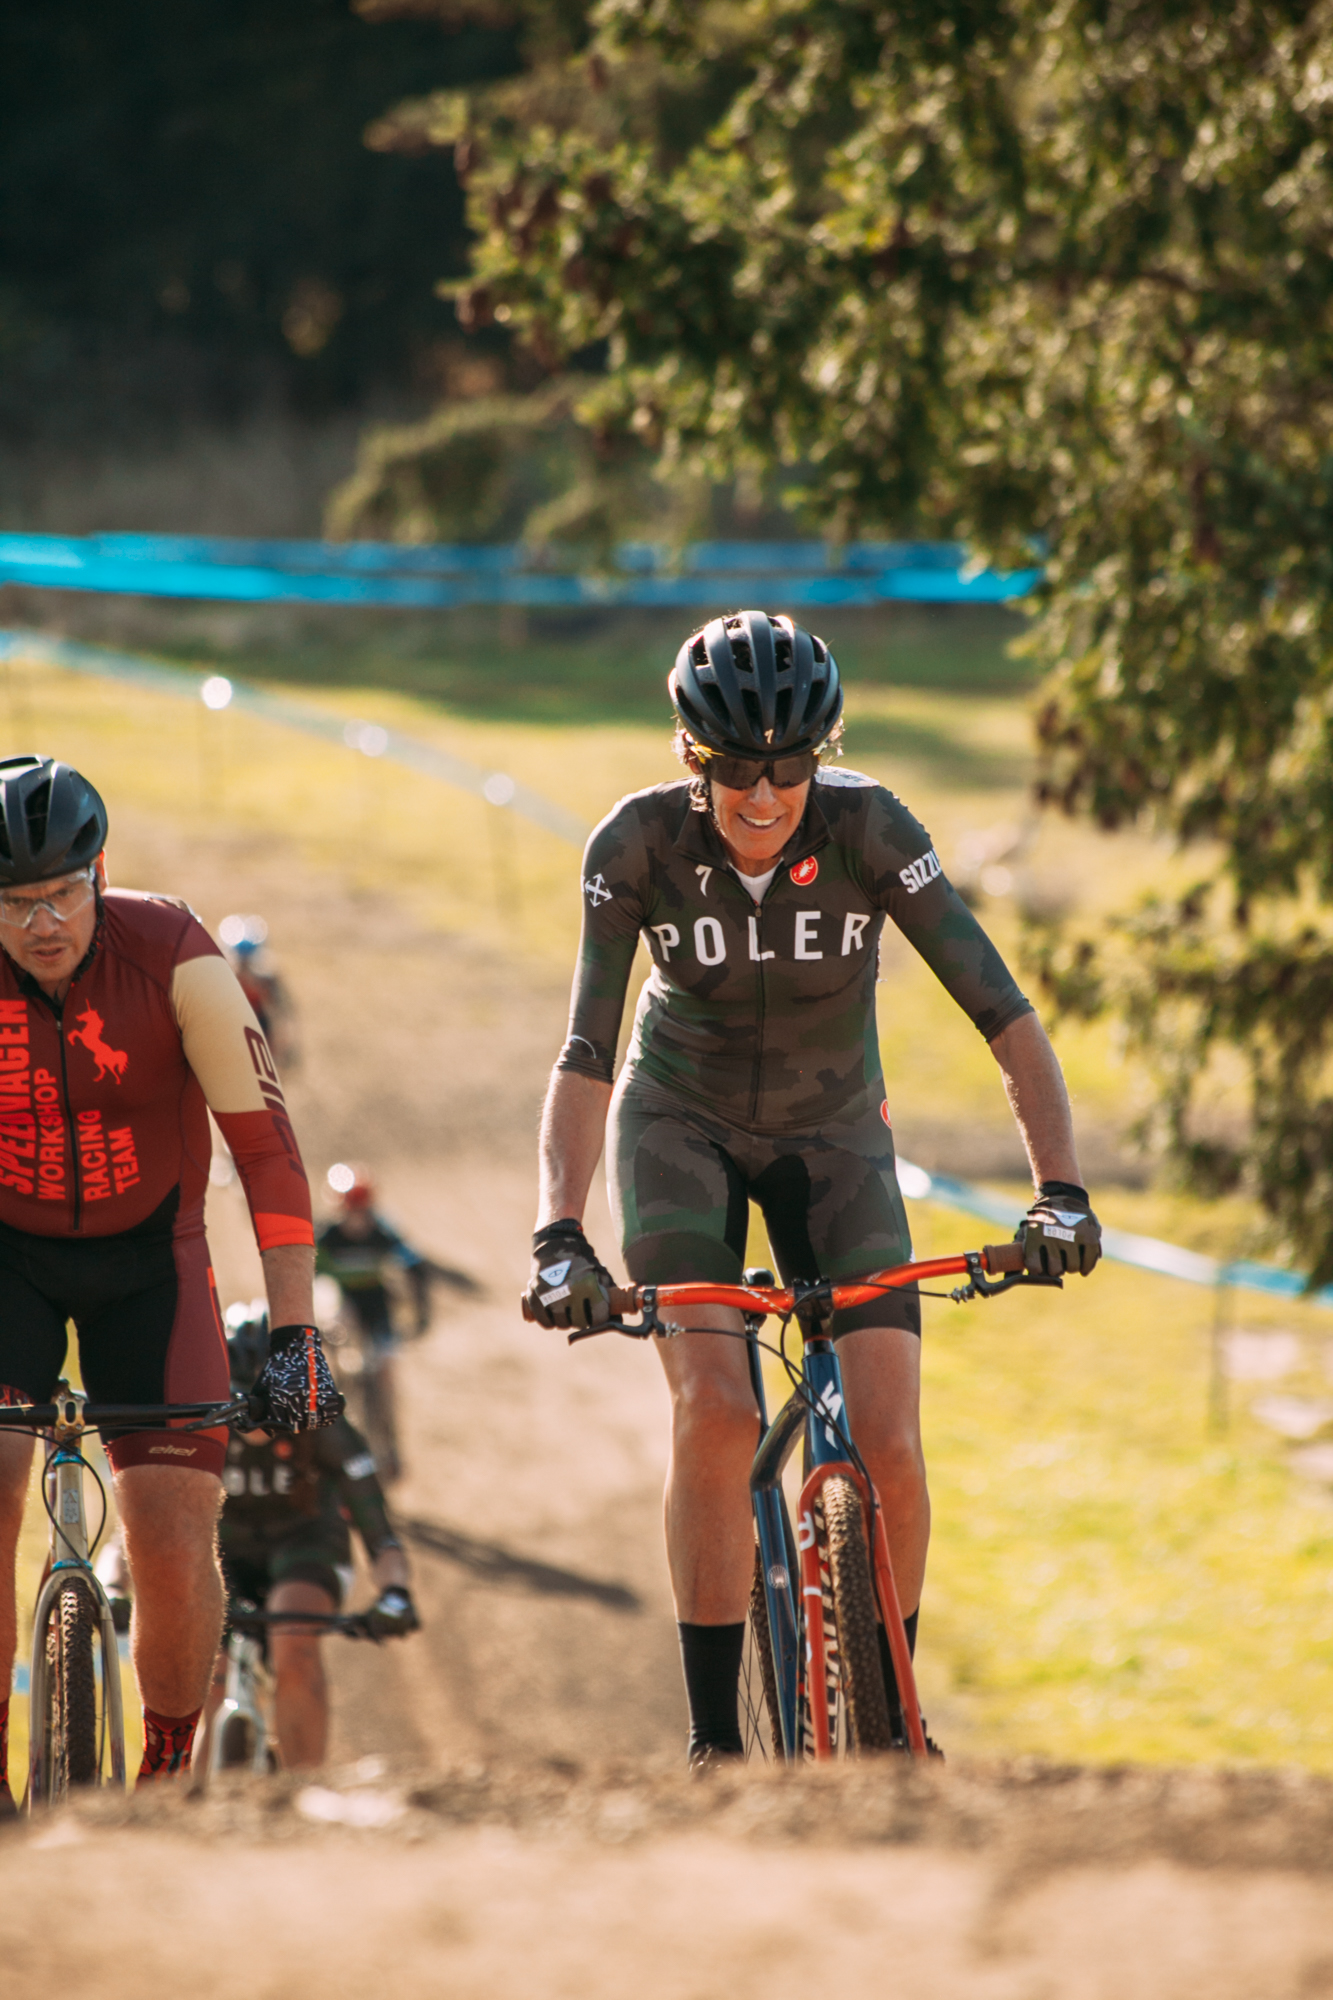 Cyclocross18_CCCX_RainierHS-186-mettlecycling.jpg